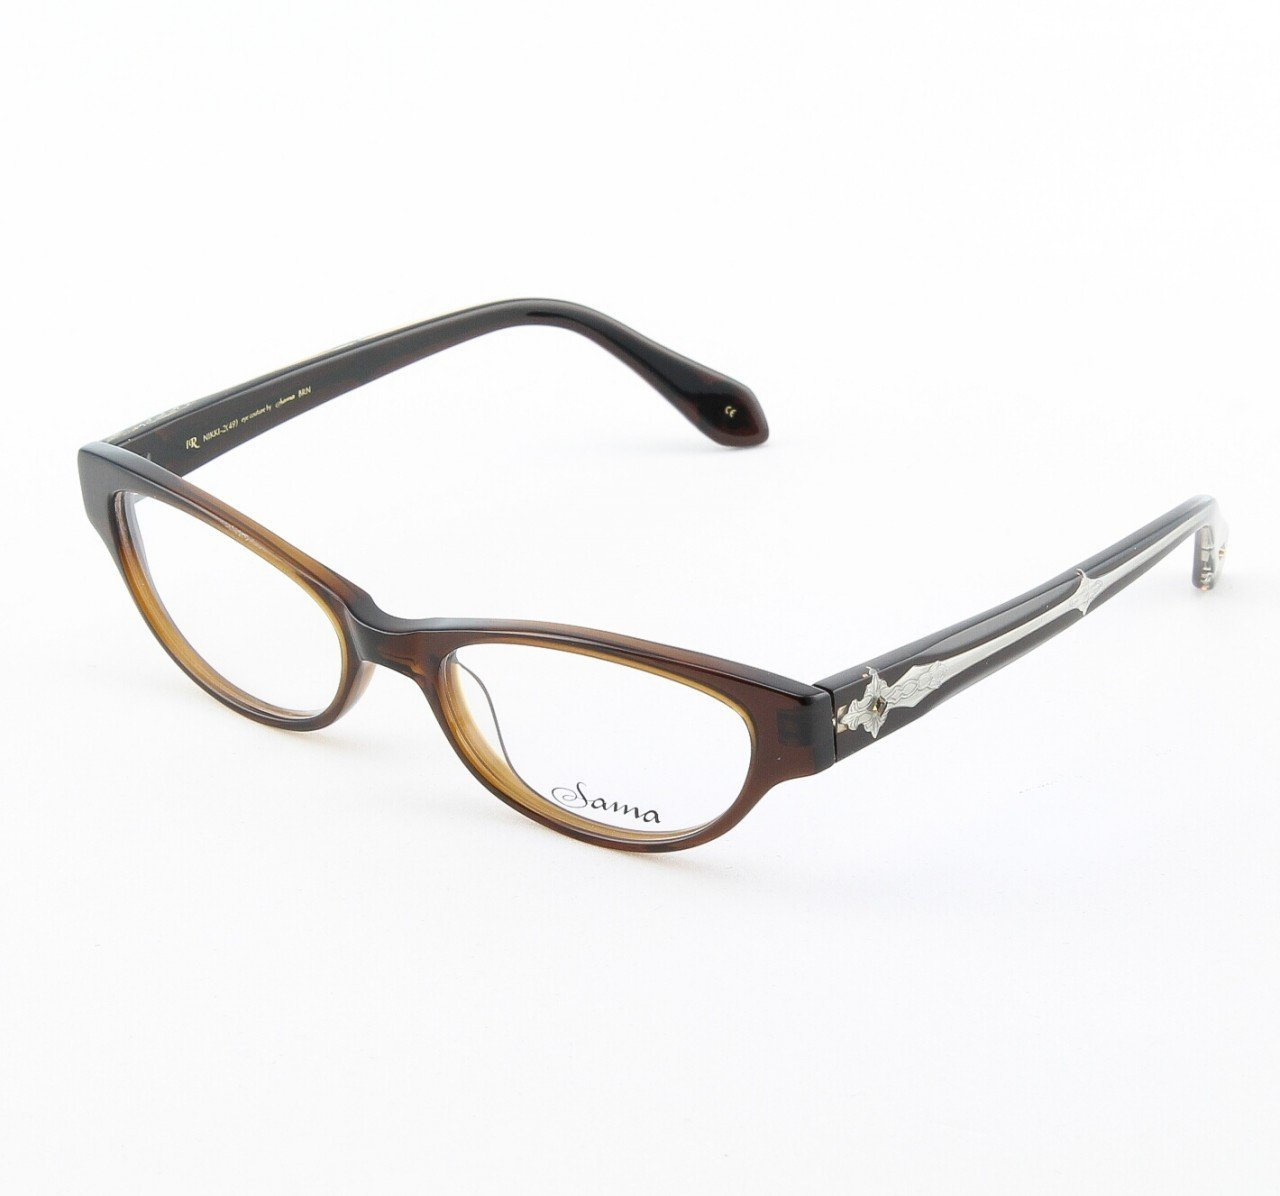 Loree Rodkin Nikki Eyeglasses Brown w/ Clear Lenses, Swarovski Crystals and Decorative Temple Core